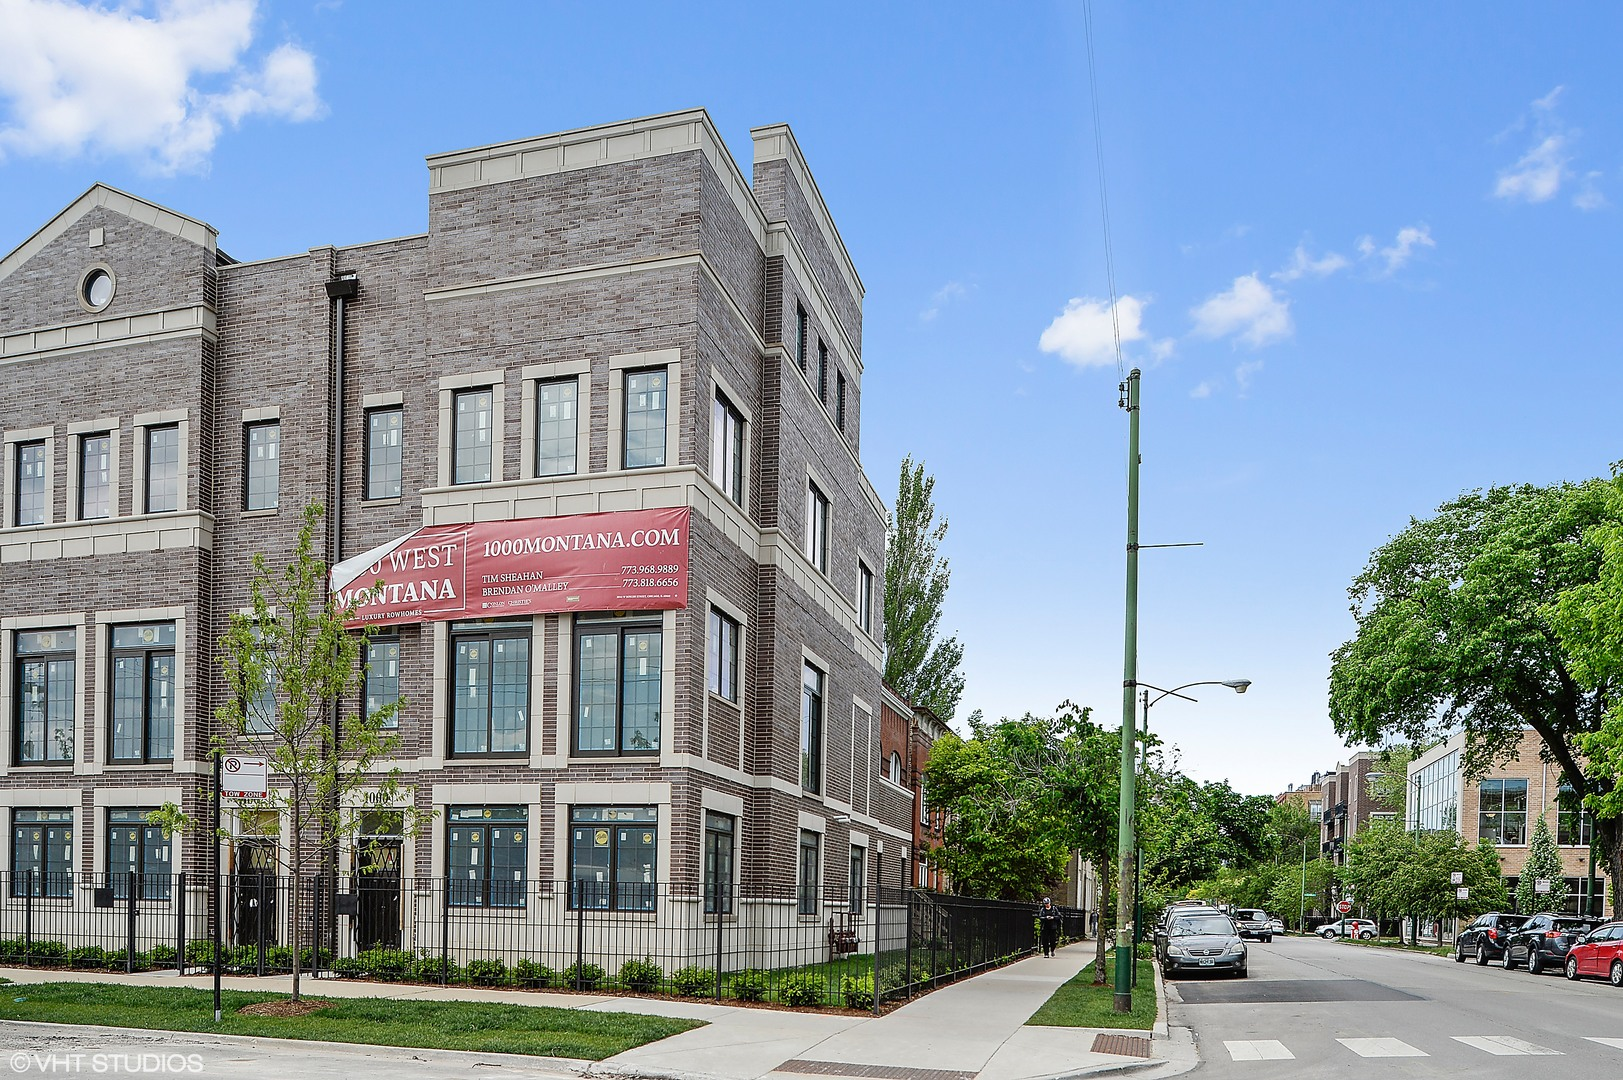 Villas / Townhouses for Sale at 1004 West Montana Street 1004 West Montana Street Chicago, Illinois,60614 United States